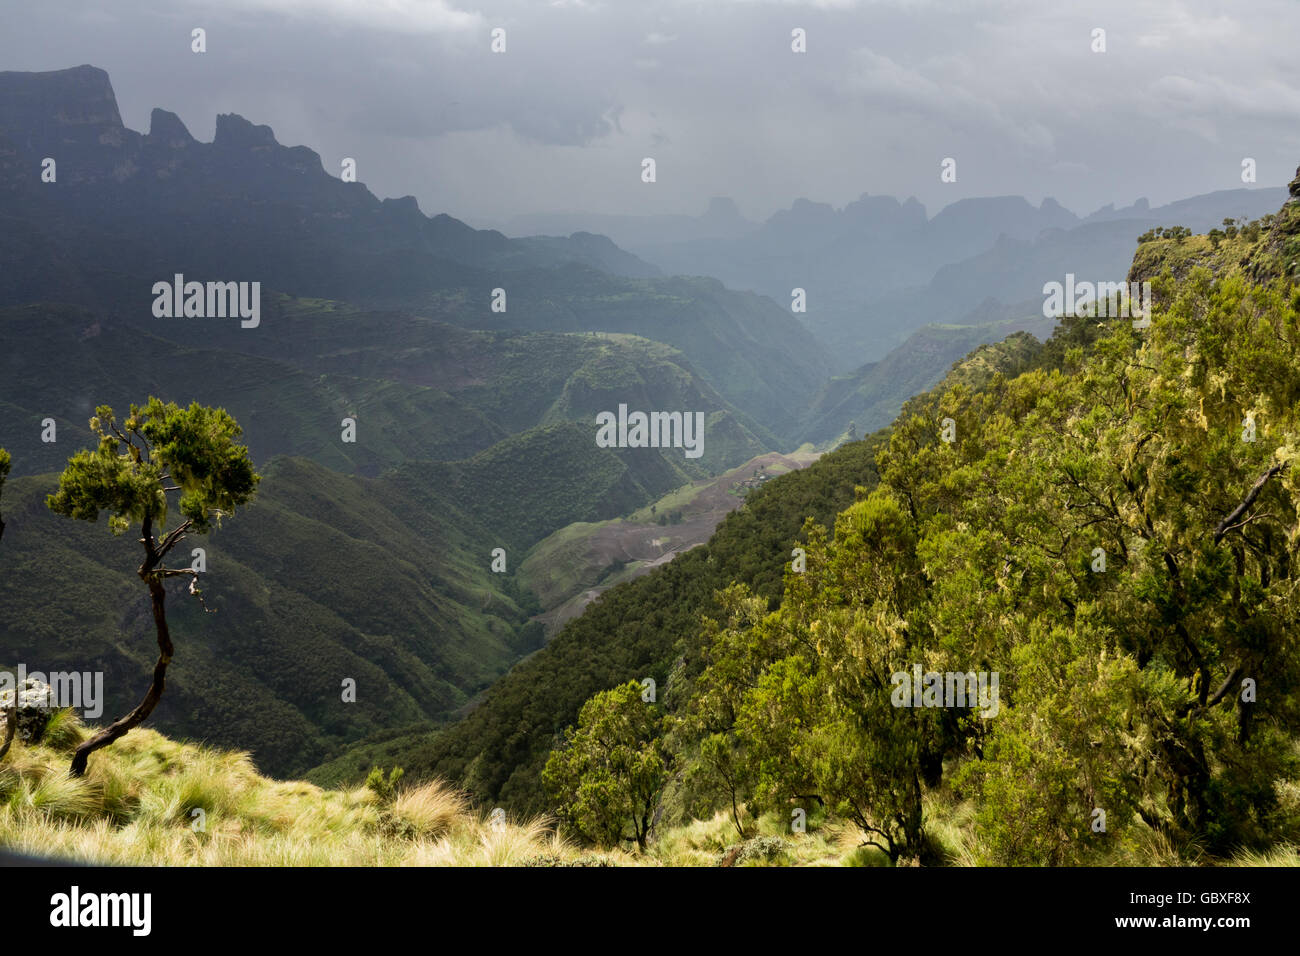 overlooking a valley in Simien Mountains National Park, Ethiopia, a UNESCO World Heritage Site. - Stock Image